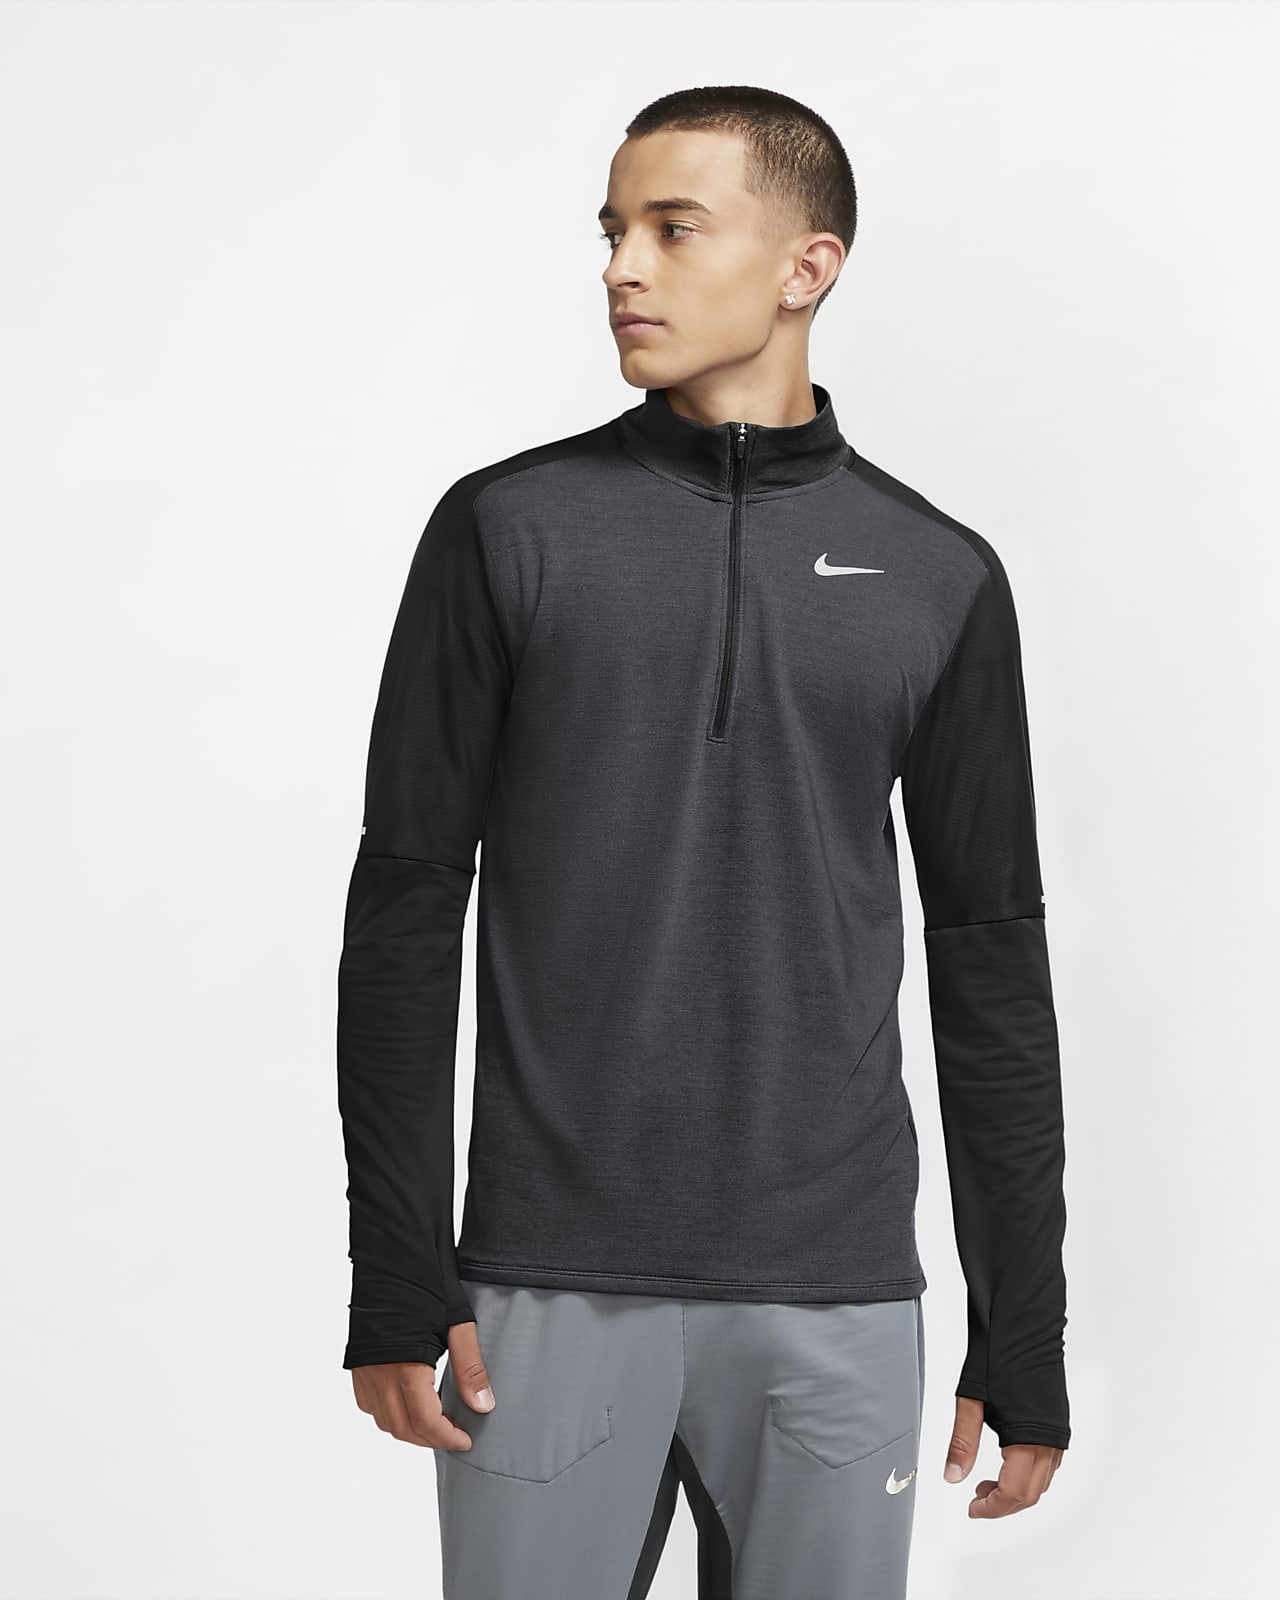 Nike Dri-FIT Men's 1/2-Zip Running Top